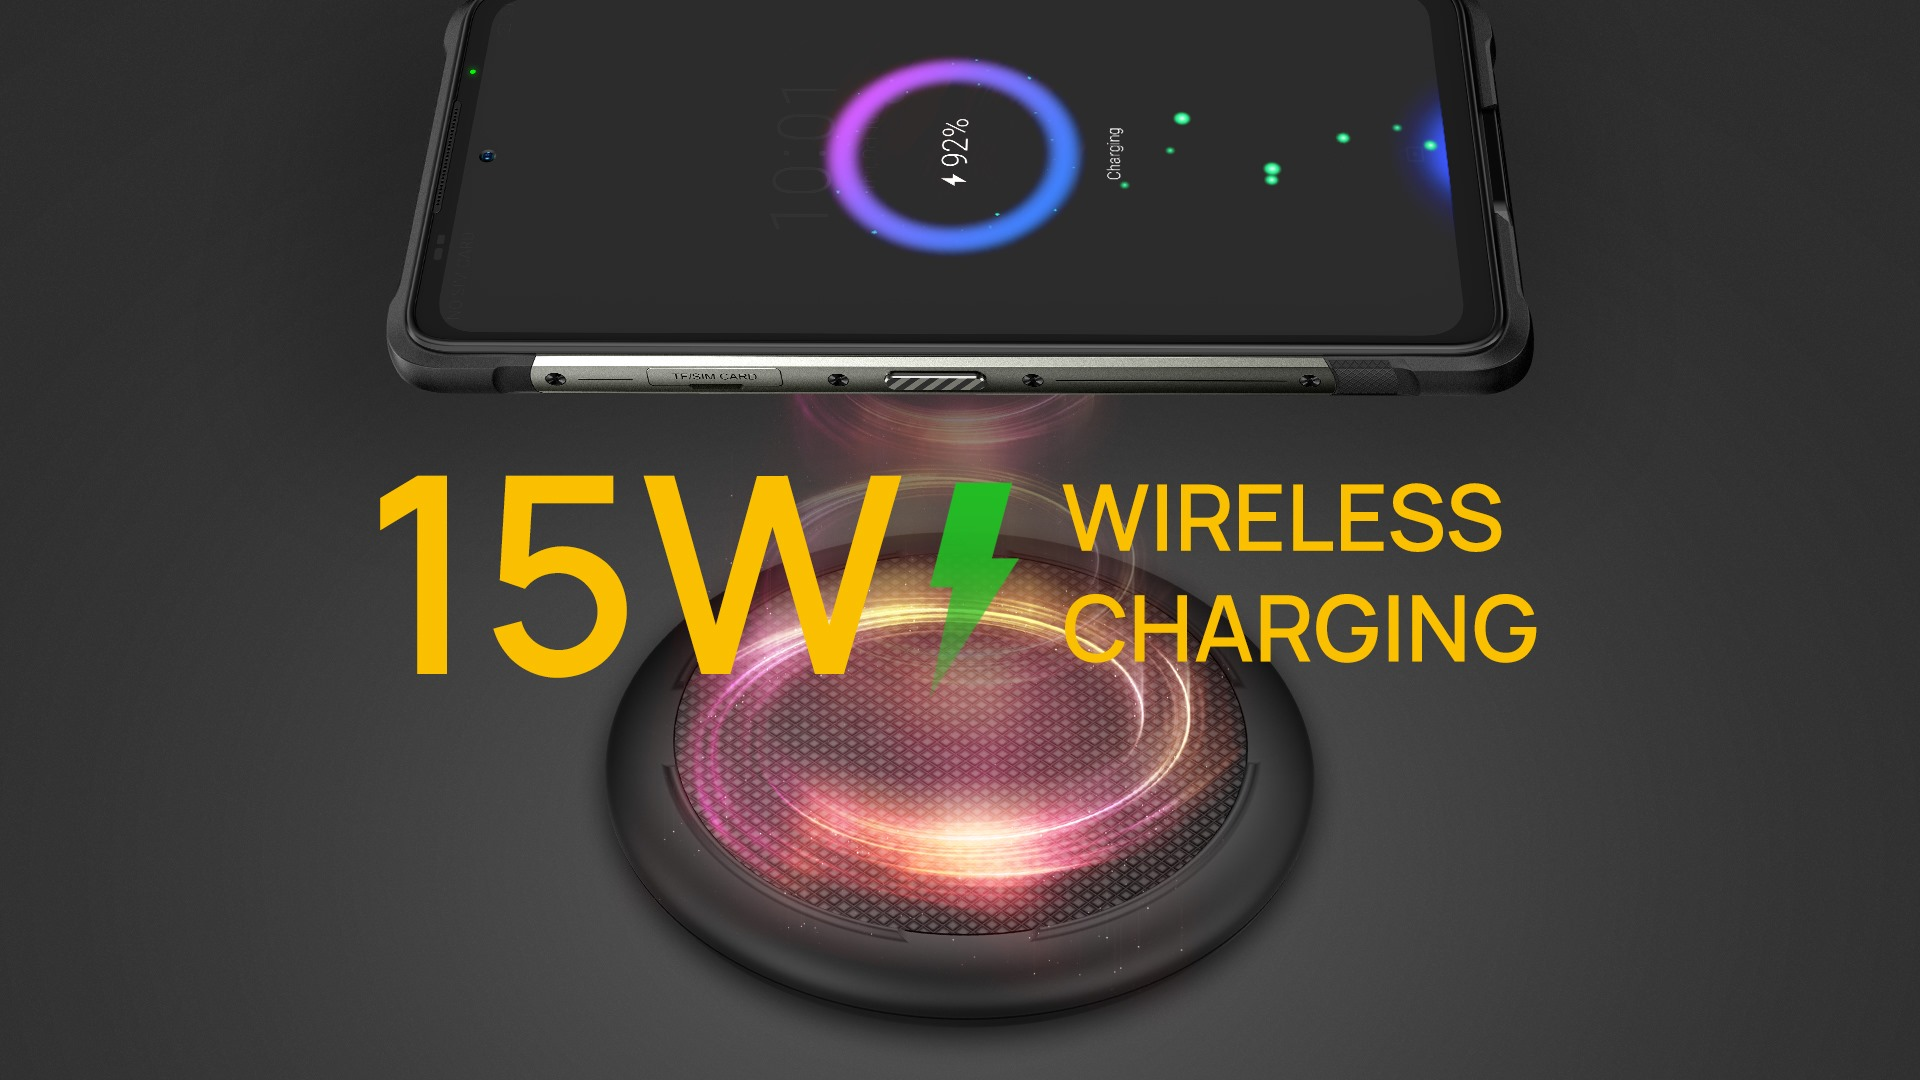 As the convenience and universal compatibility of wireless charging, wireless charging is making its way into more and more smartphones, Ulefone Armor 10 5G is no exception. The flagship Armor 10 5G supports 15W wireless charging, it is the first time Ulefone is offering 15W wireless charging technology in the Armor lineup.